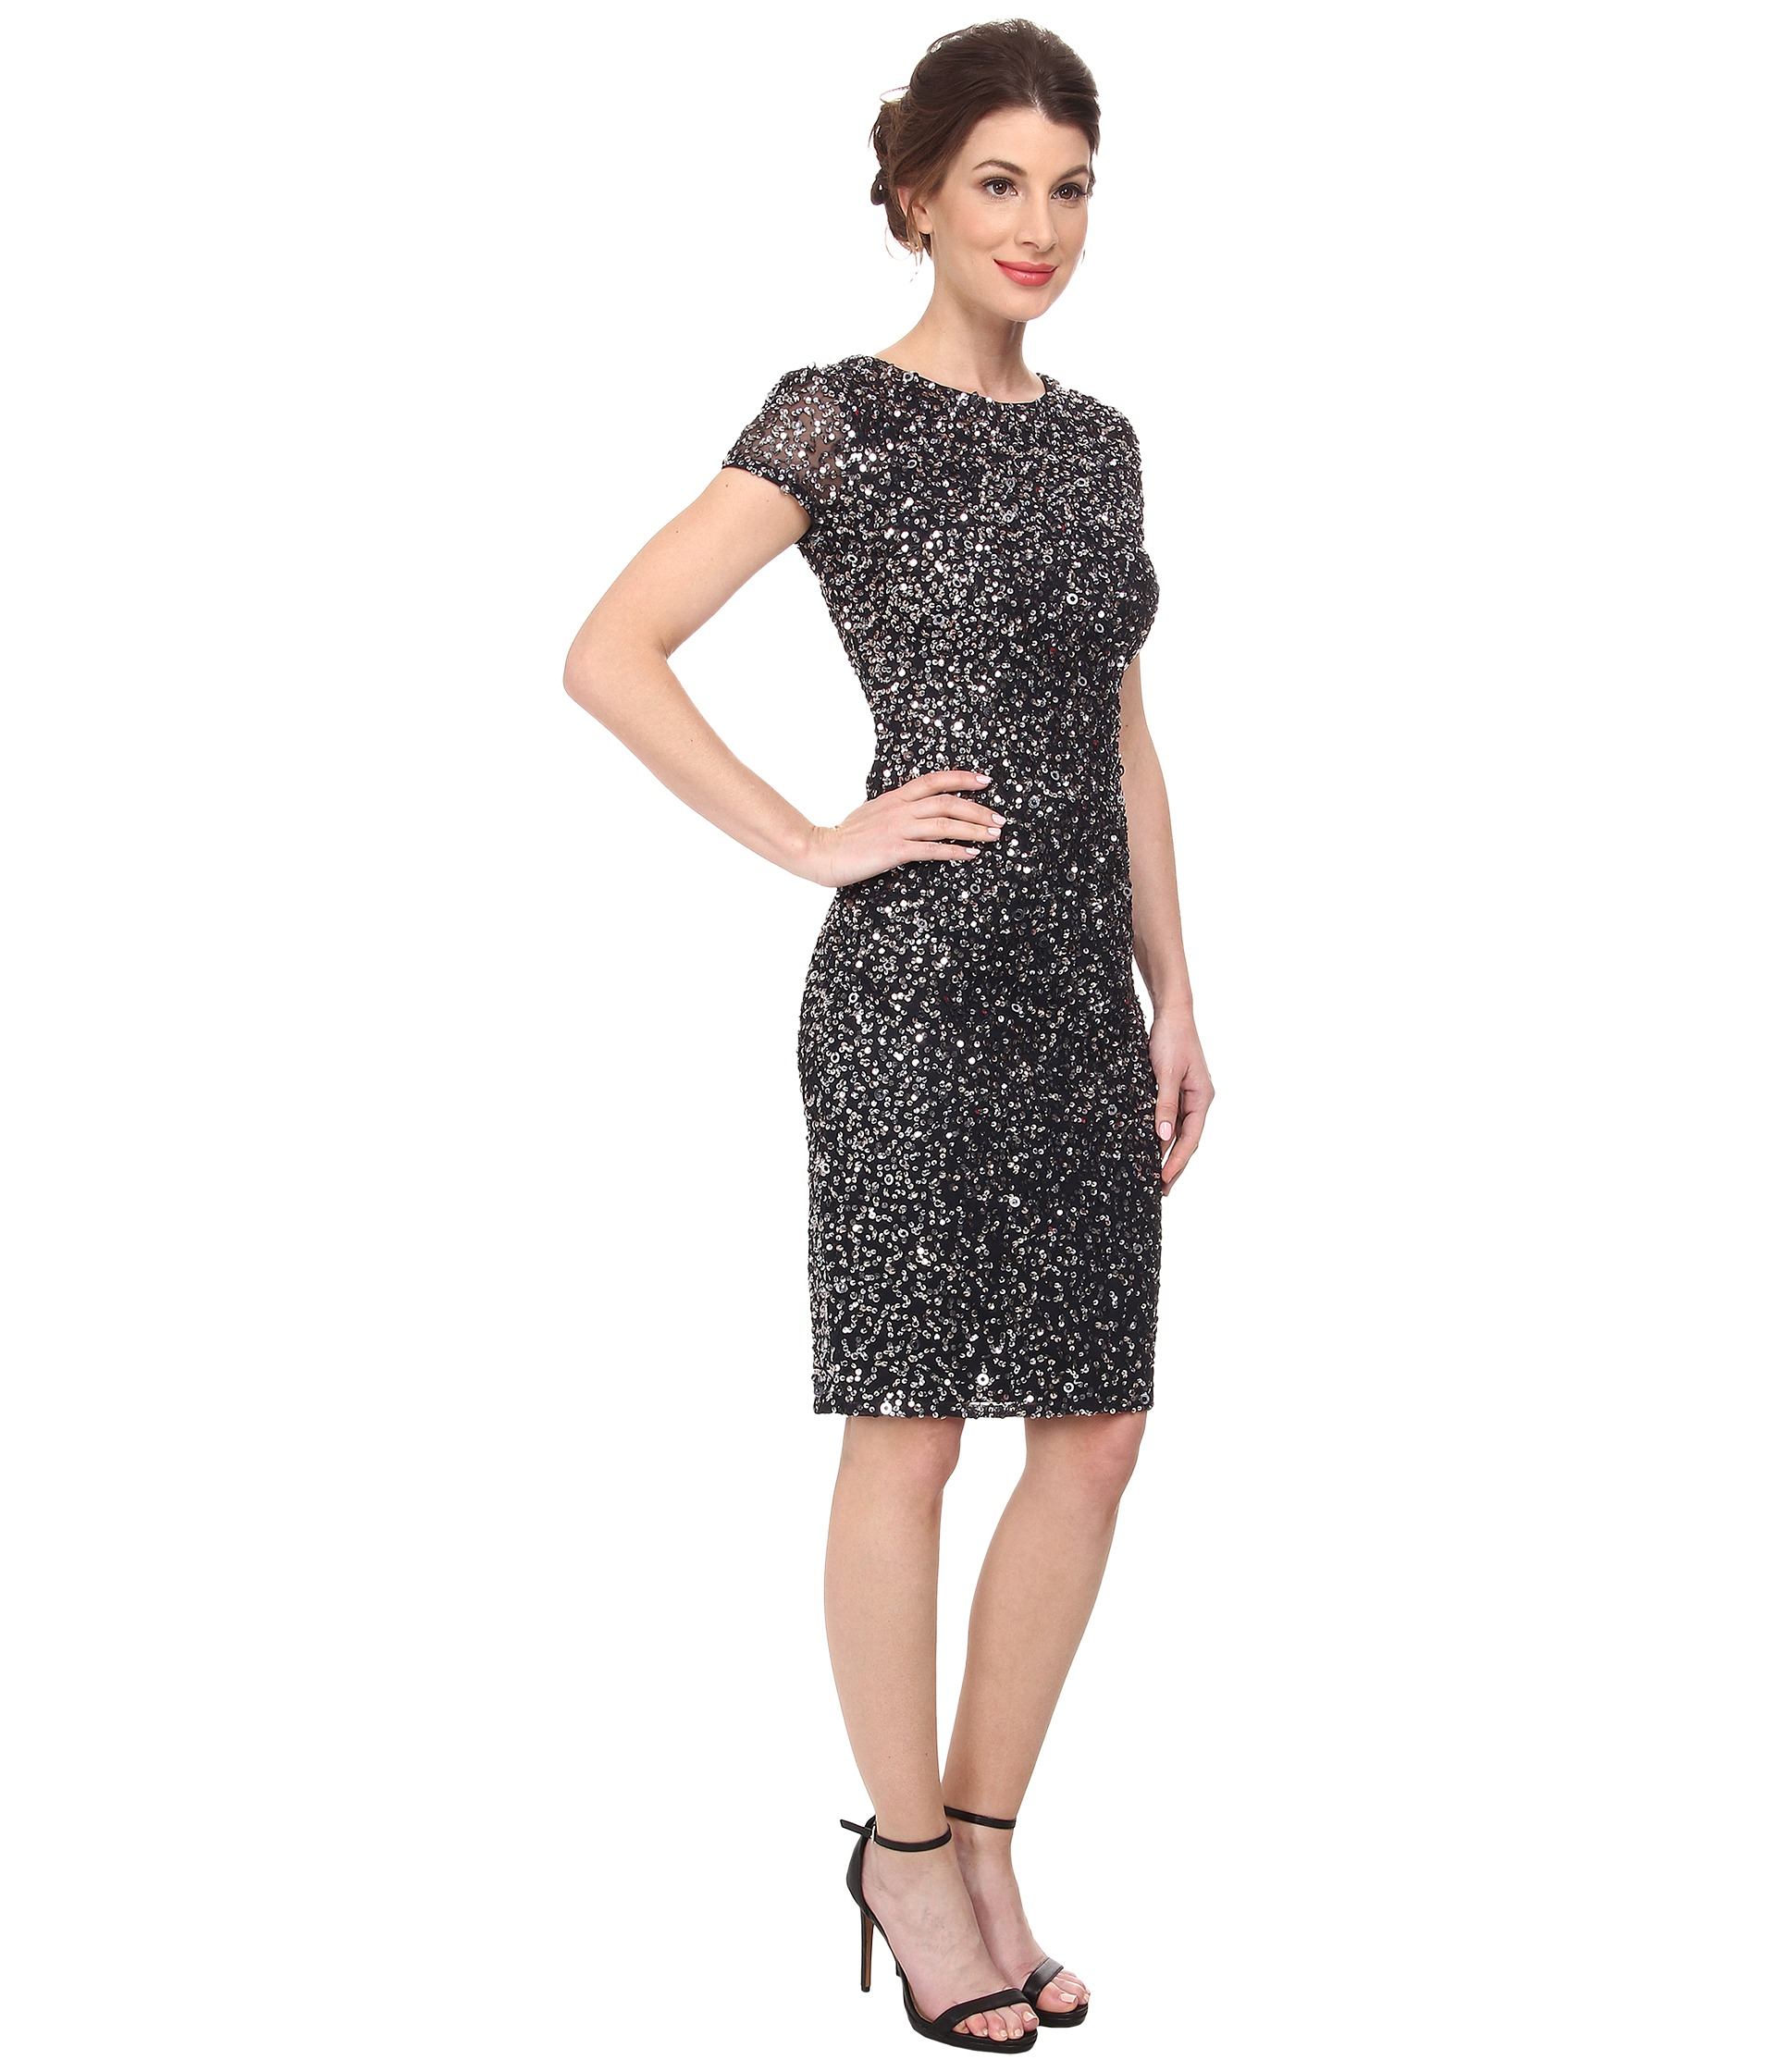 19df249e085 Adrianna Papell Short Sleeve Sequin Cocktail Dress - Gomes Weine AG